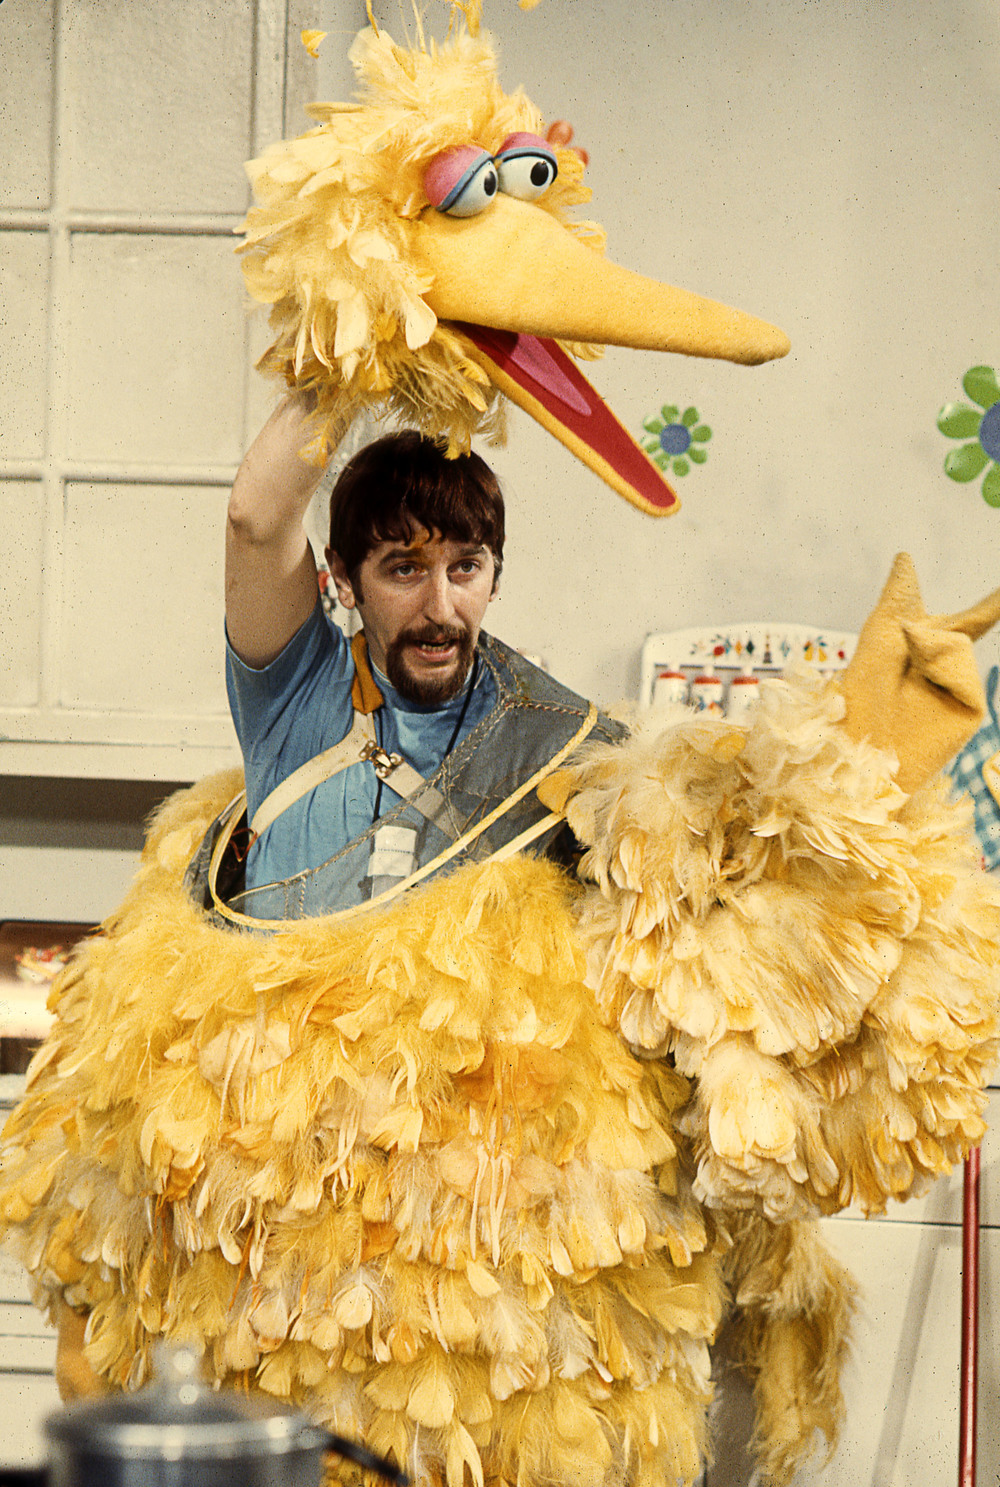 Archival photo of Caroll Spinney puppeteering Big Bird. Photo courtesy of Robert Furhing.